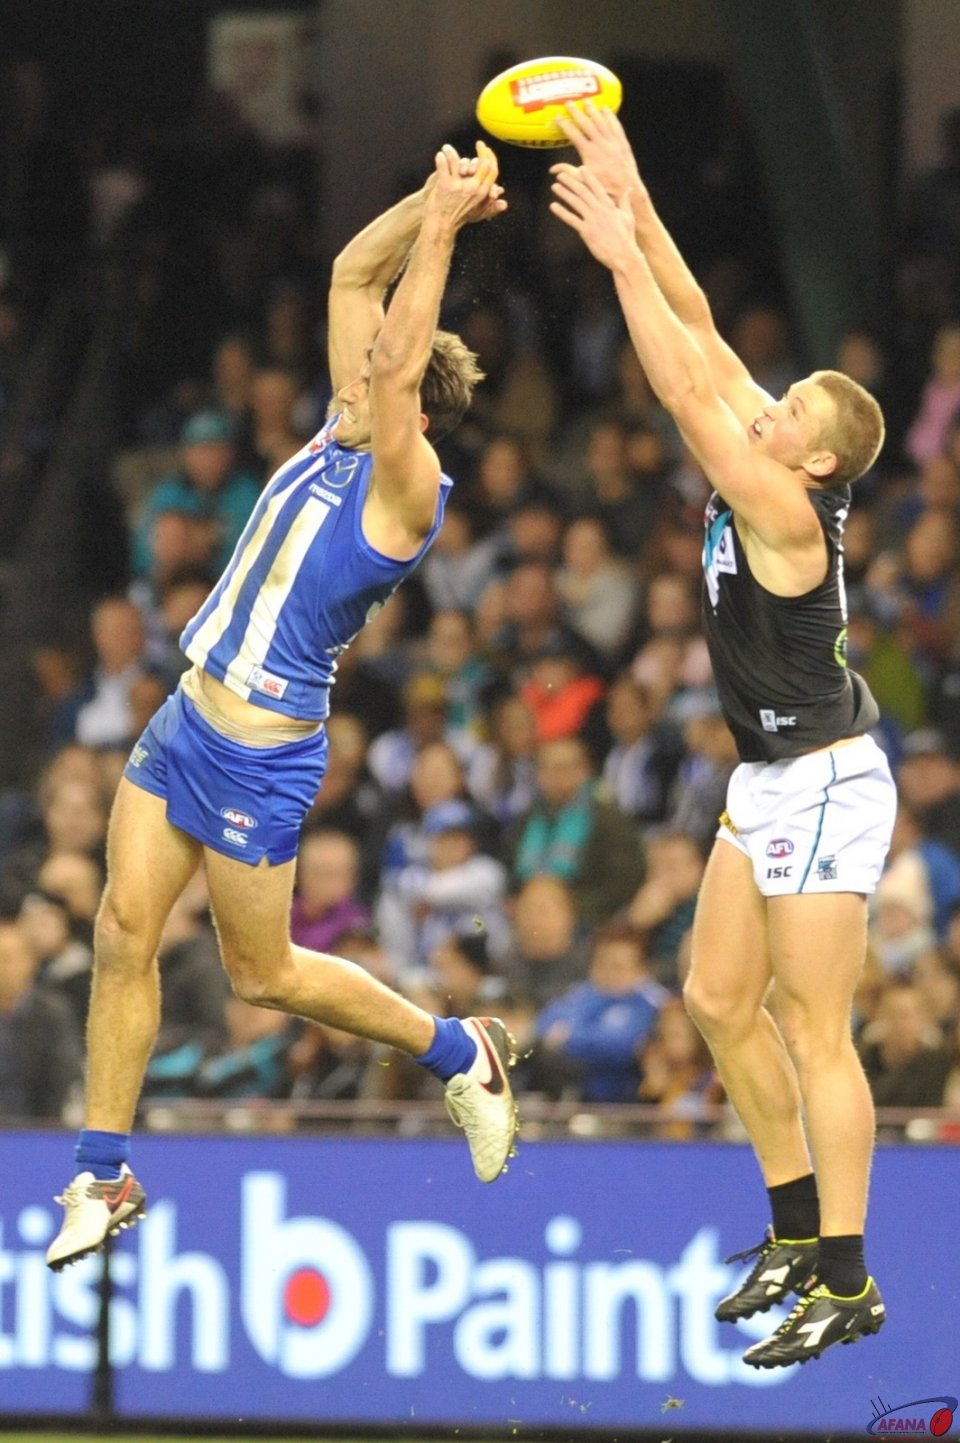 Jarrad Waite misses the marjk as Tom Clurey reaches